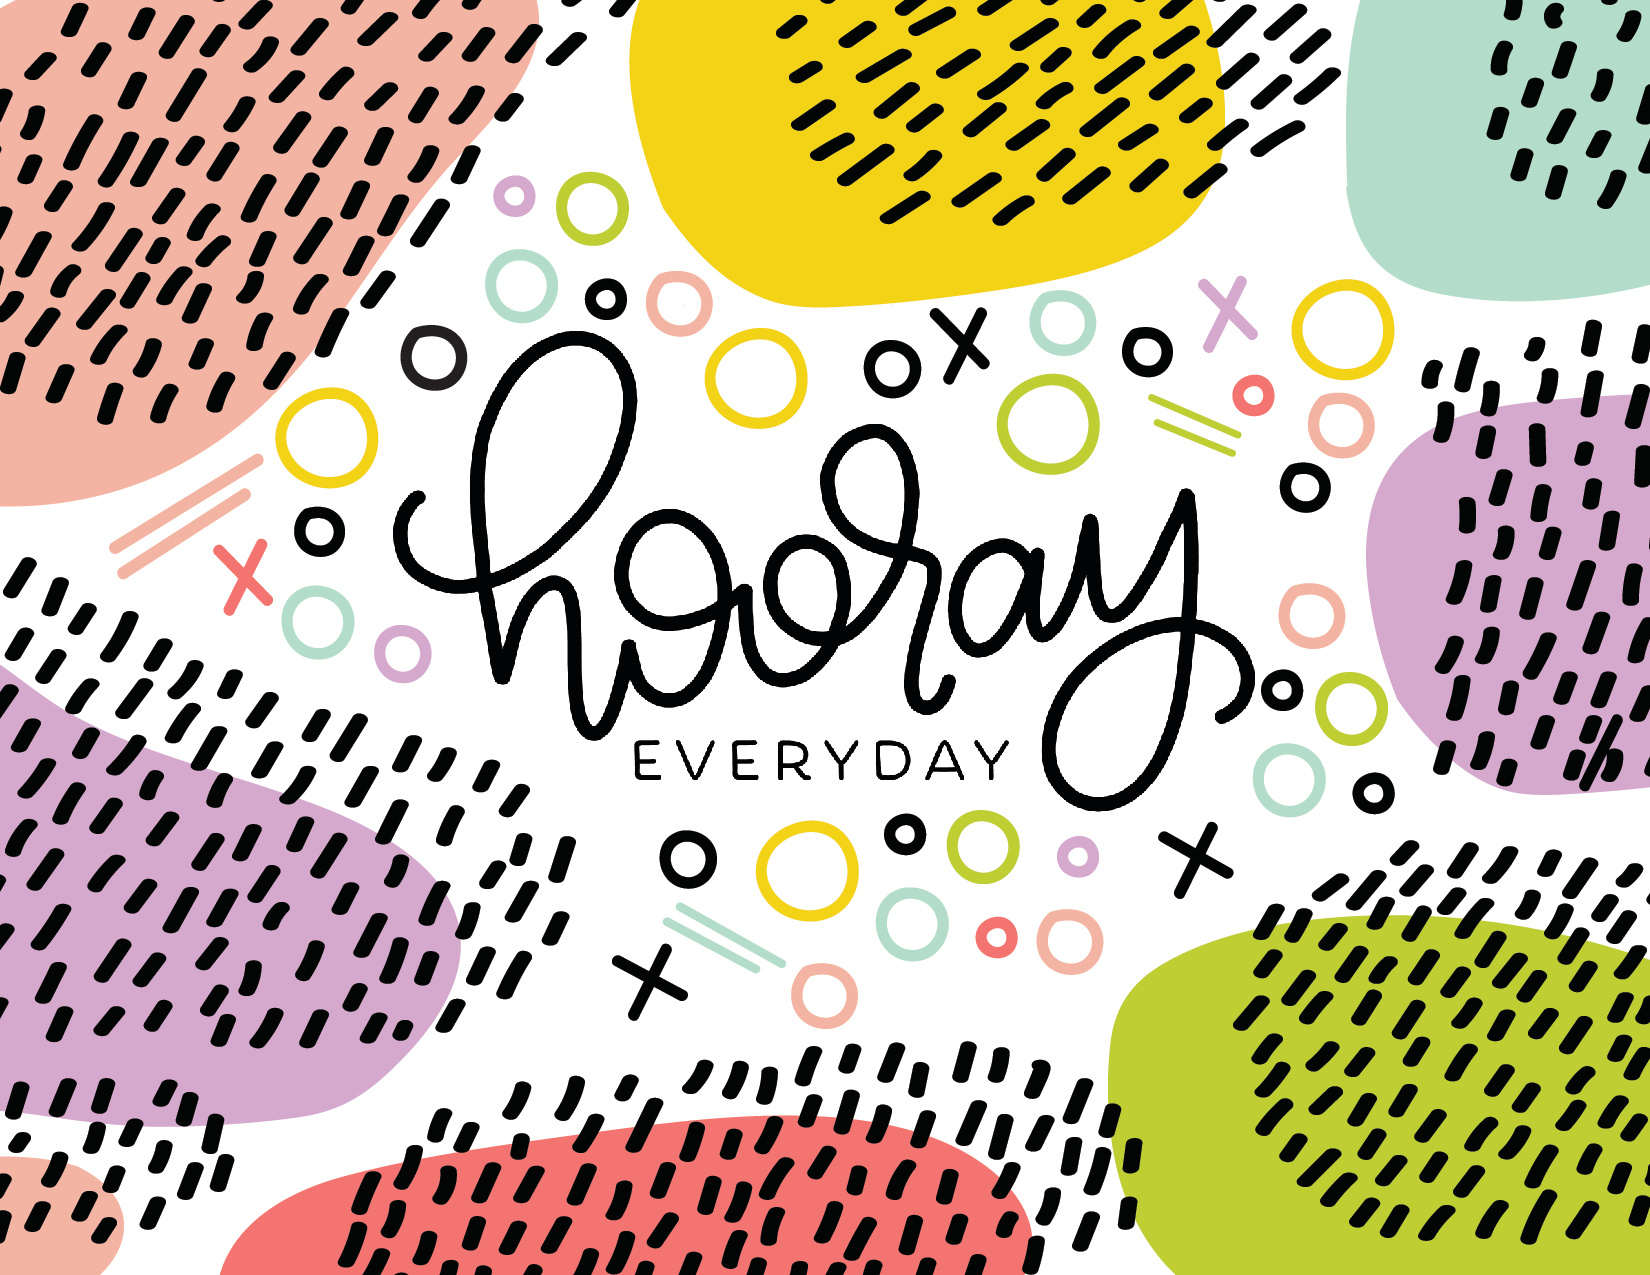 hooray everyday_v2-01